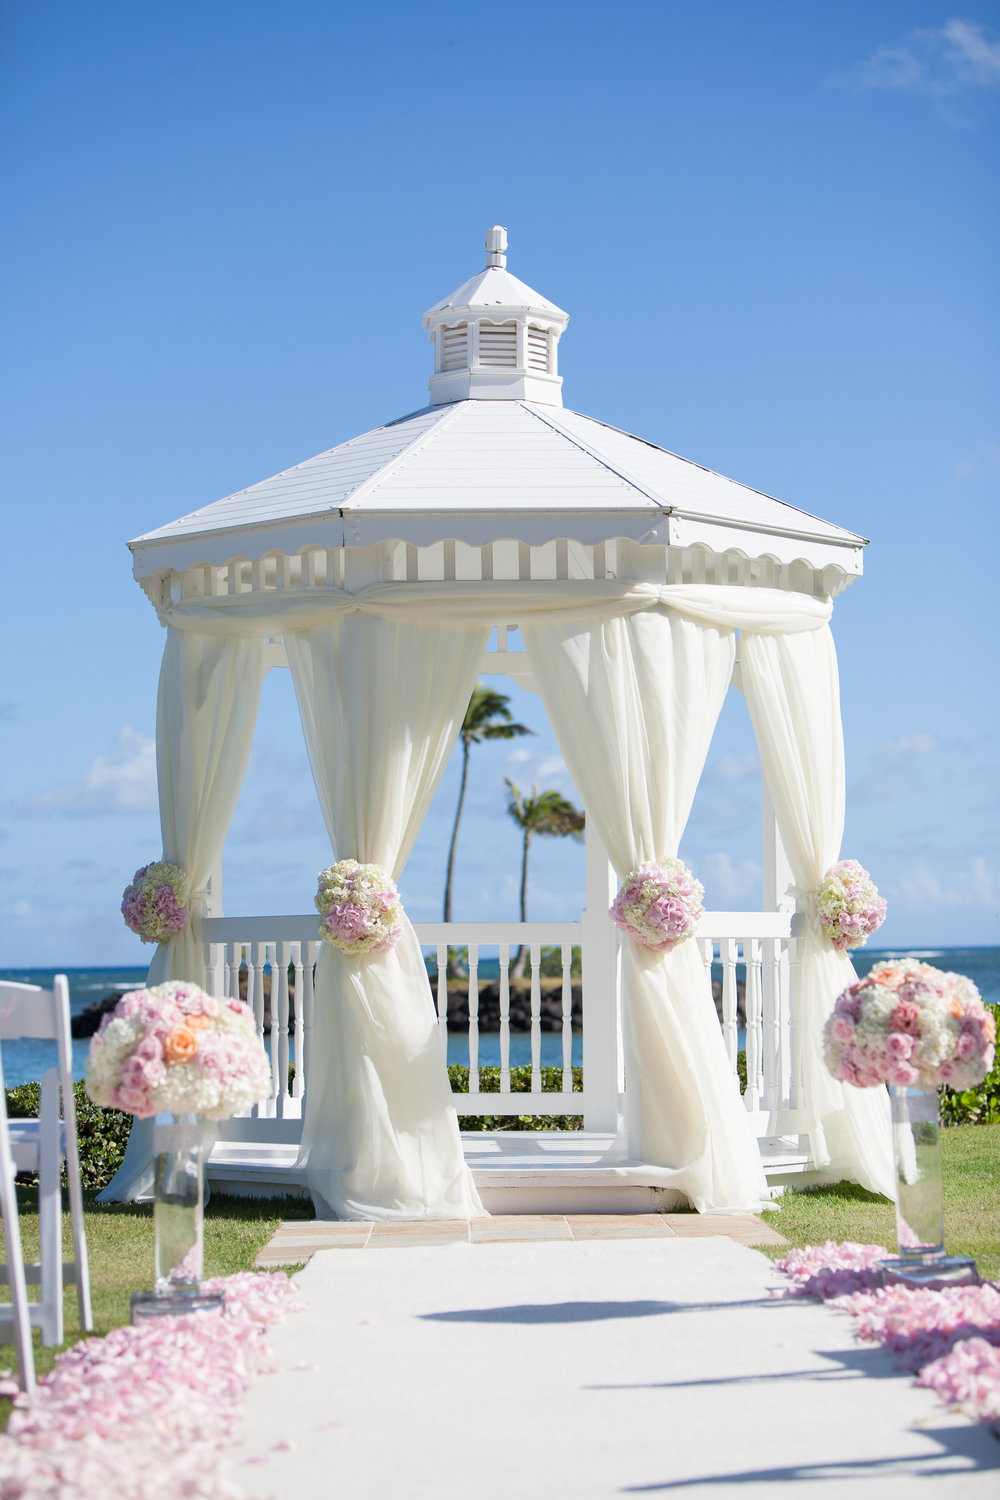 flowing white gazebo+pink ceremony flowers by passion roots-rachel robertson photography | coordination-neu events